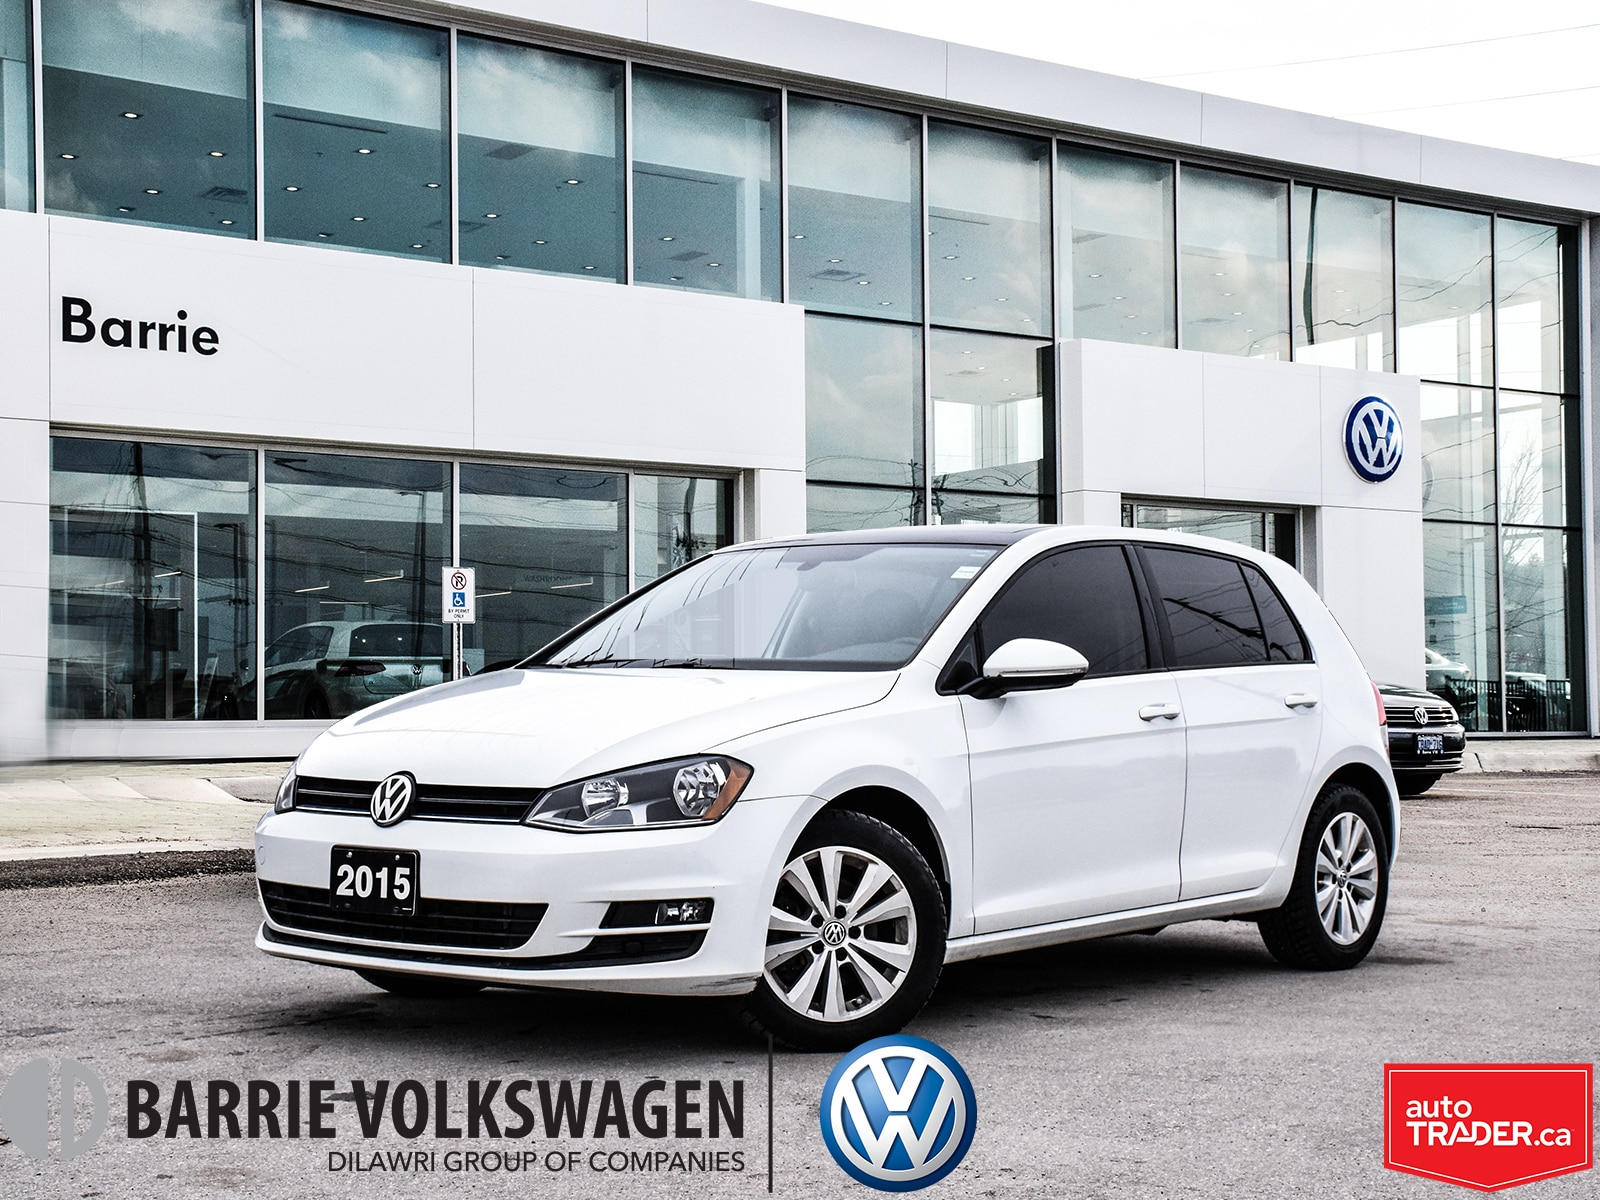 2015 Volkswagen Golf TDI Comfortline/5-Door/2.99% AT 72 MOS Hatchback